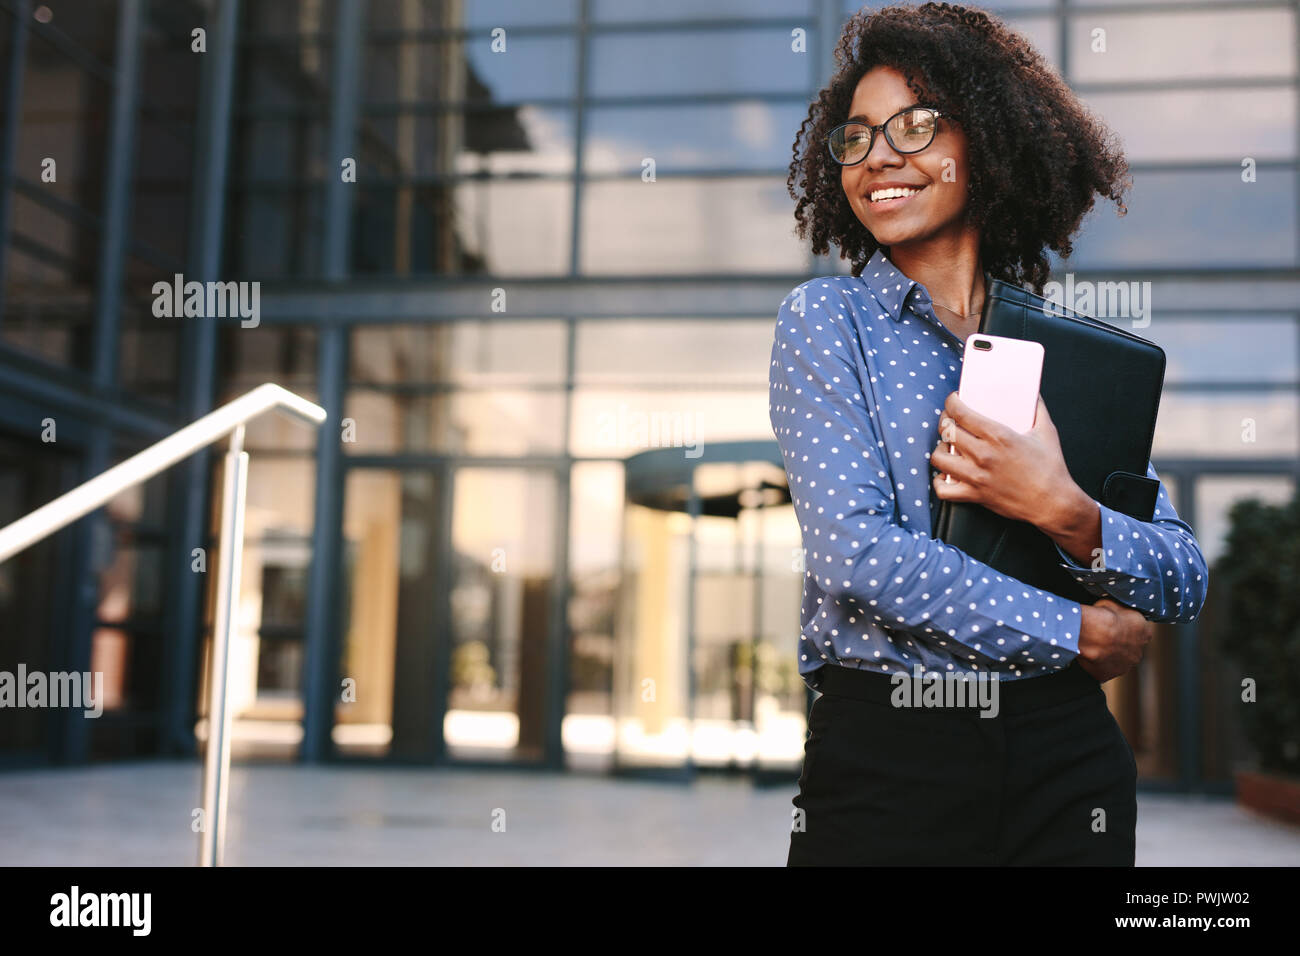 Woman with mobile phone and file standing outdoors and looking away. Business woman standing outside a office building. - Stock Image